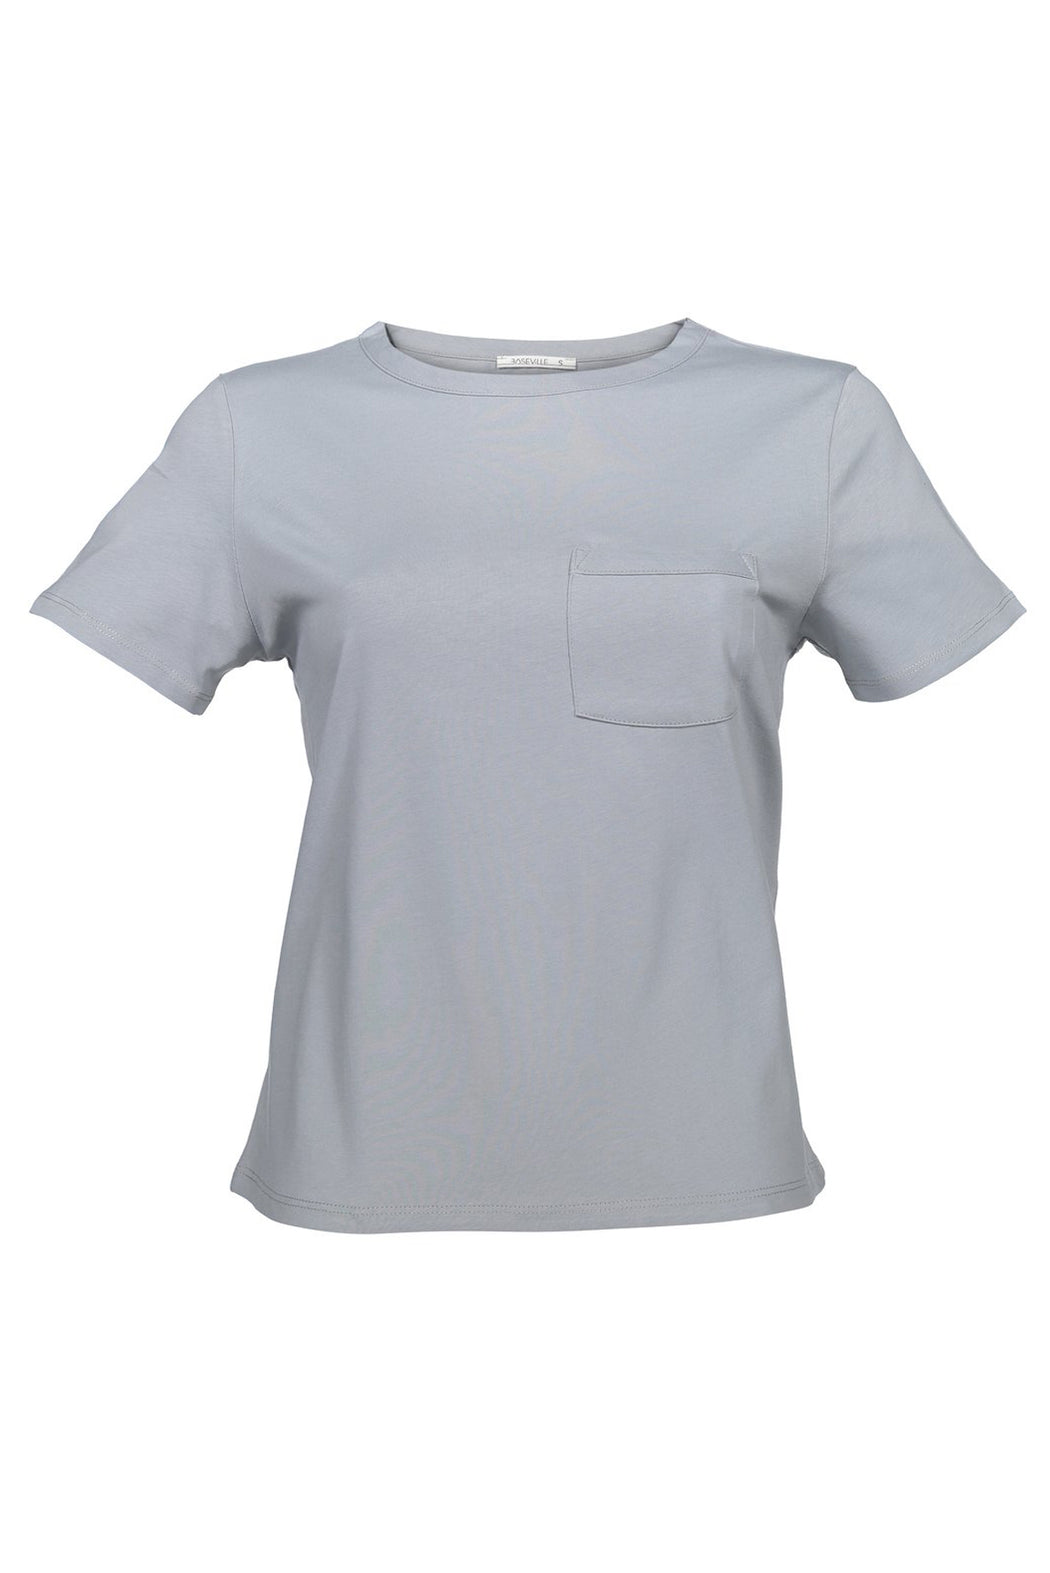 Basic T-shirt with pocket | Grey | Tops | Baseville | [product_tag] - Fair Bazaar Ethical Living